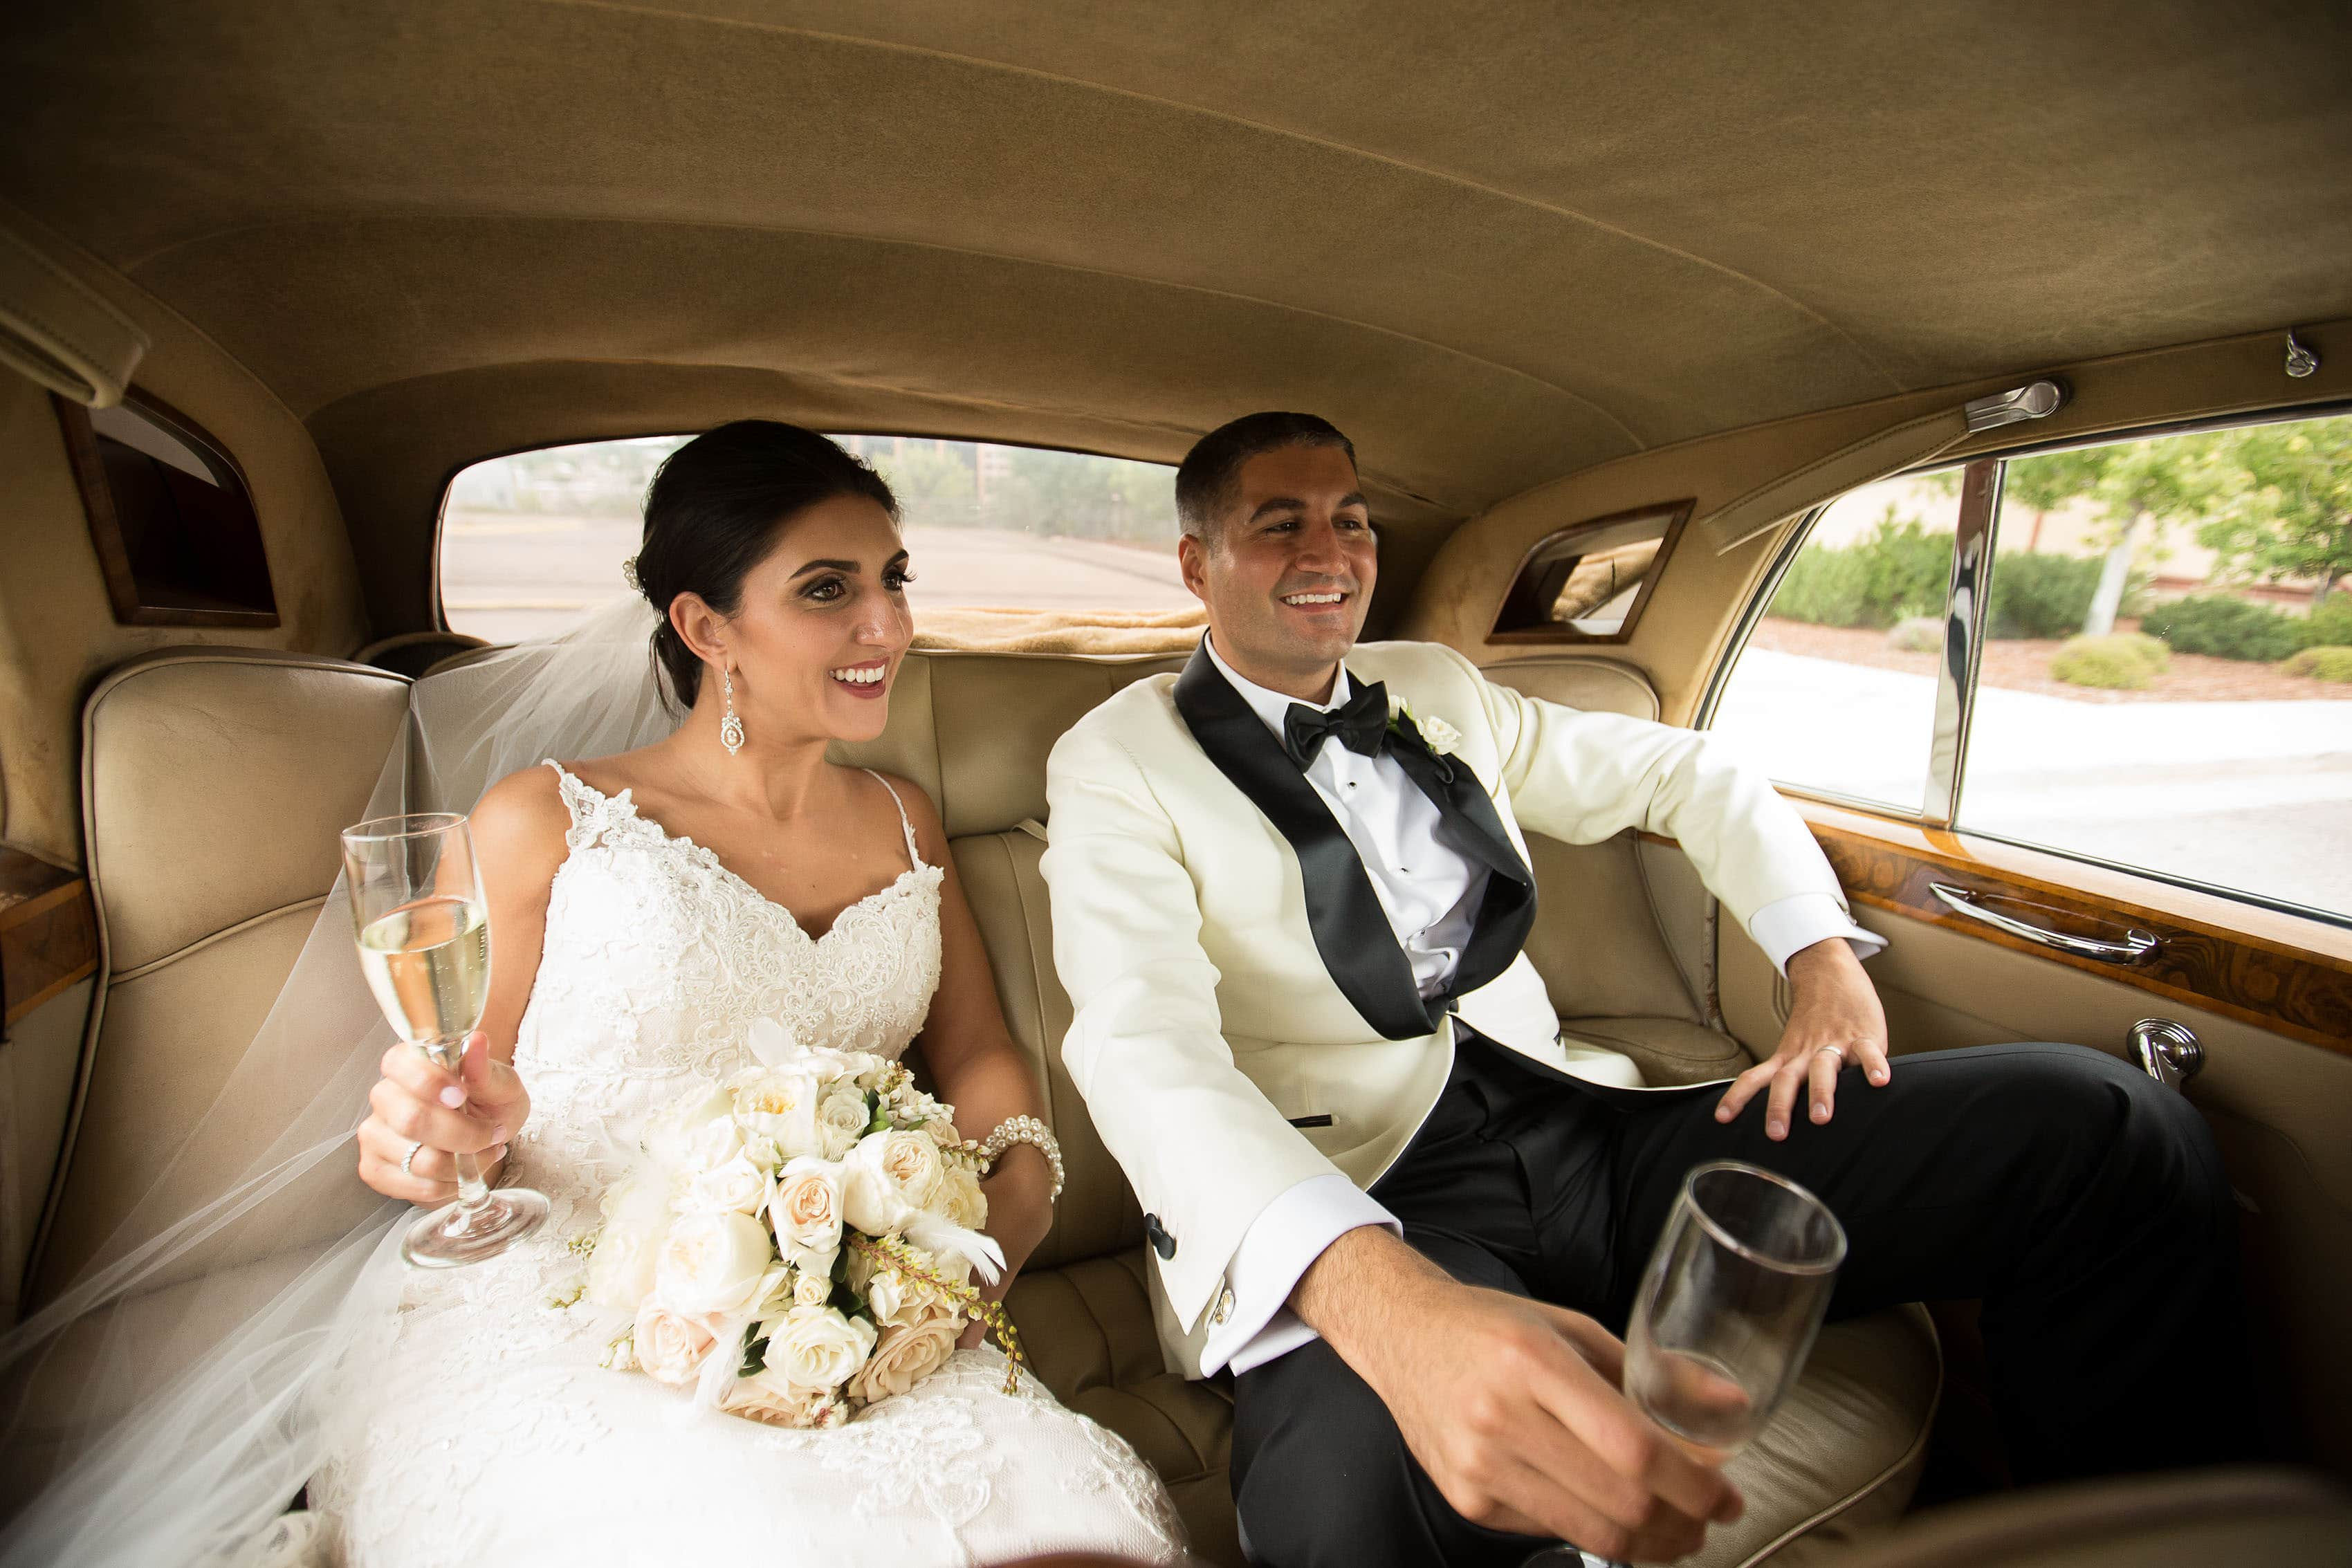 Marika and Dean ride together in a Rolls Royce during their Denver Greek Grand Hyatt wedding